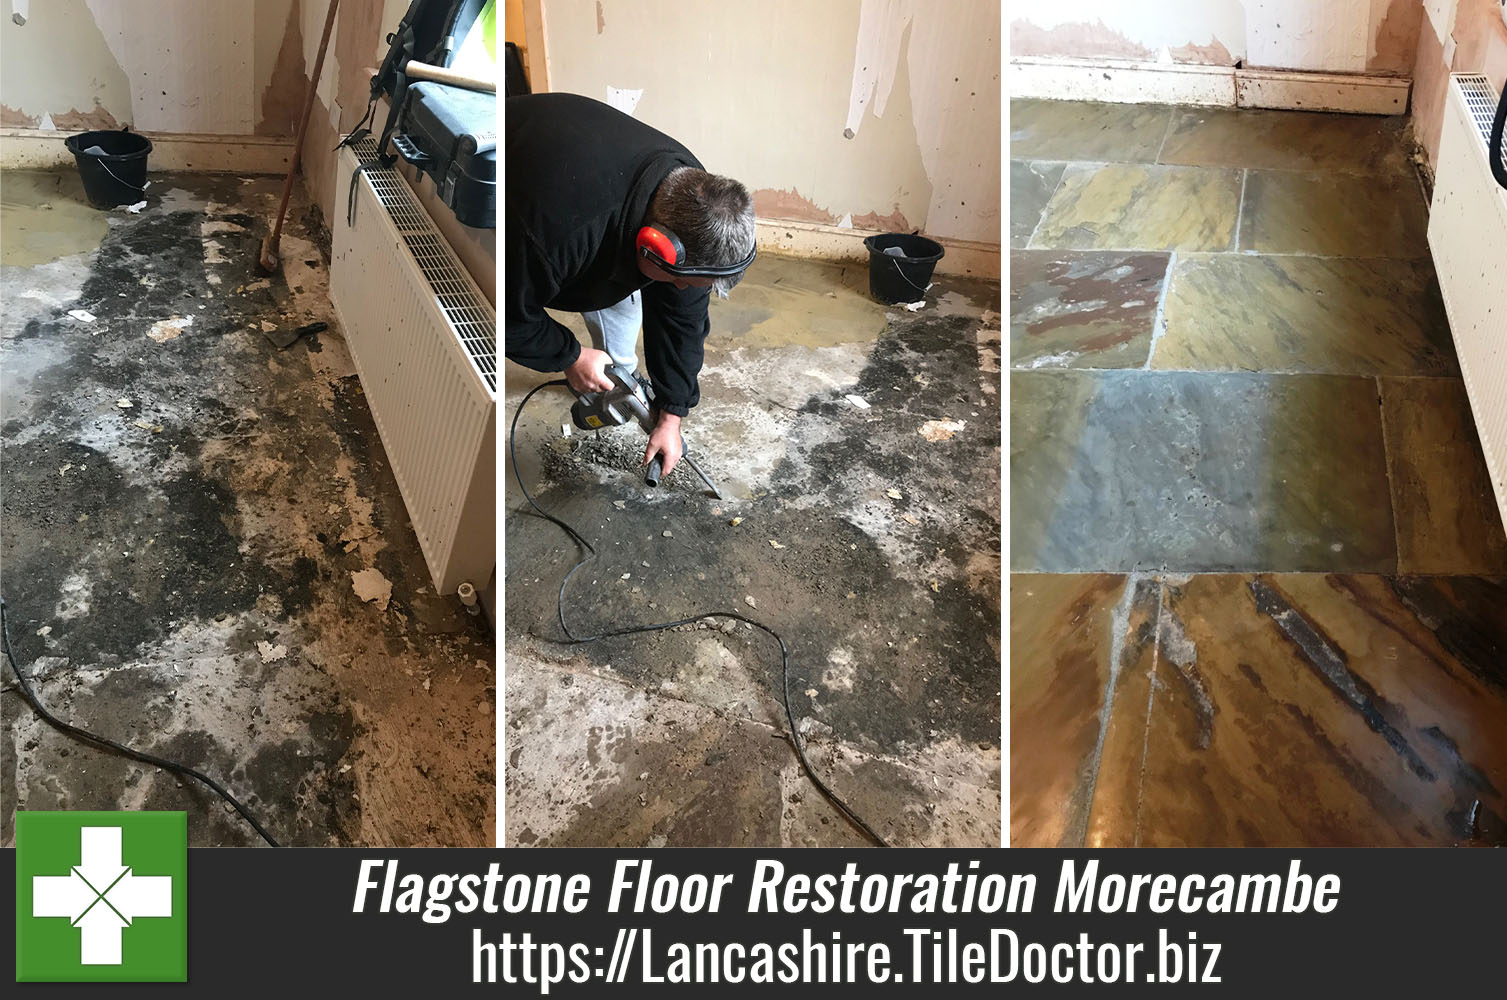 Flagstone Floor Restoration Morecambe